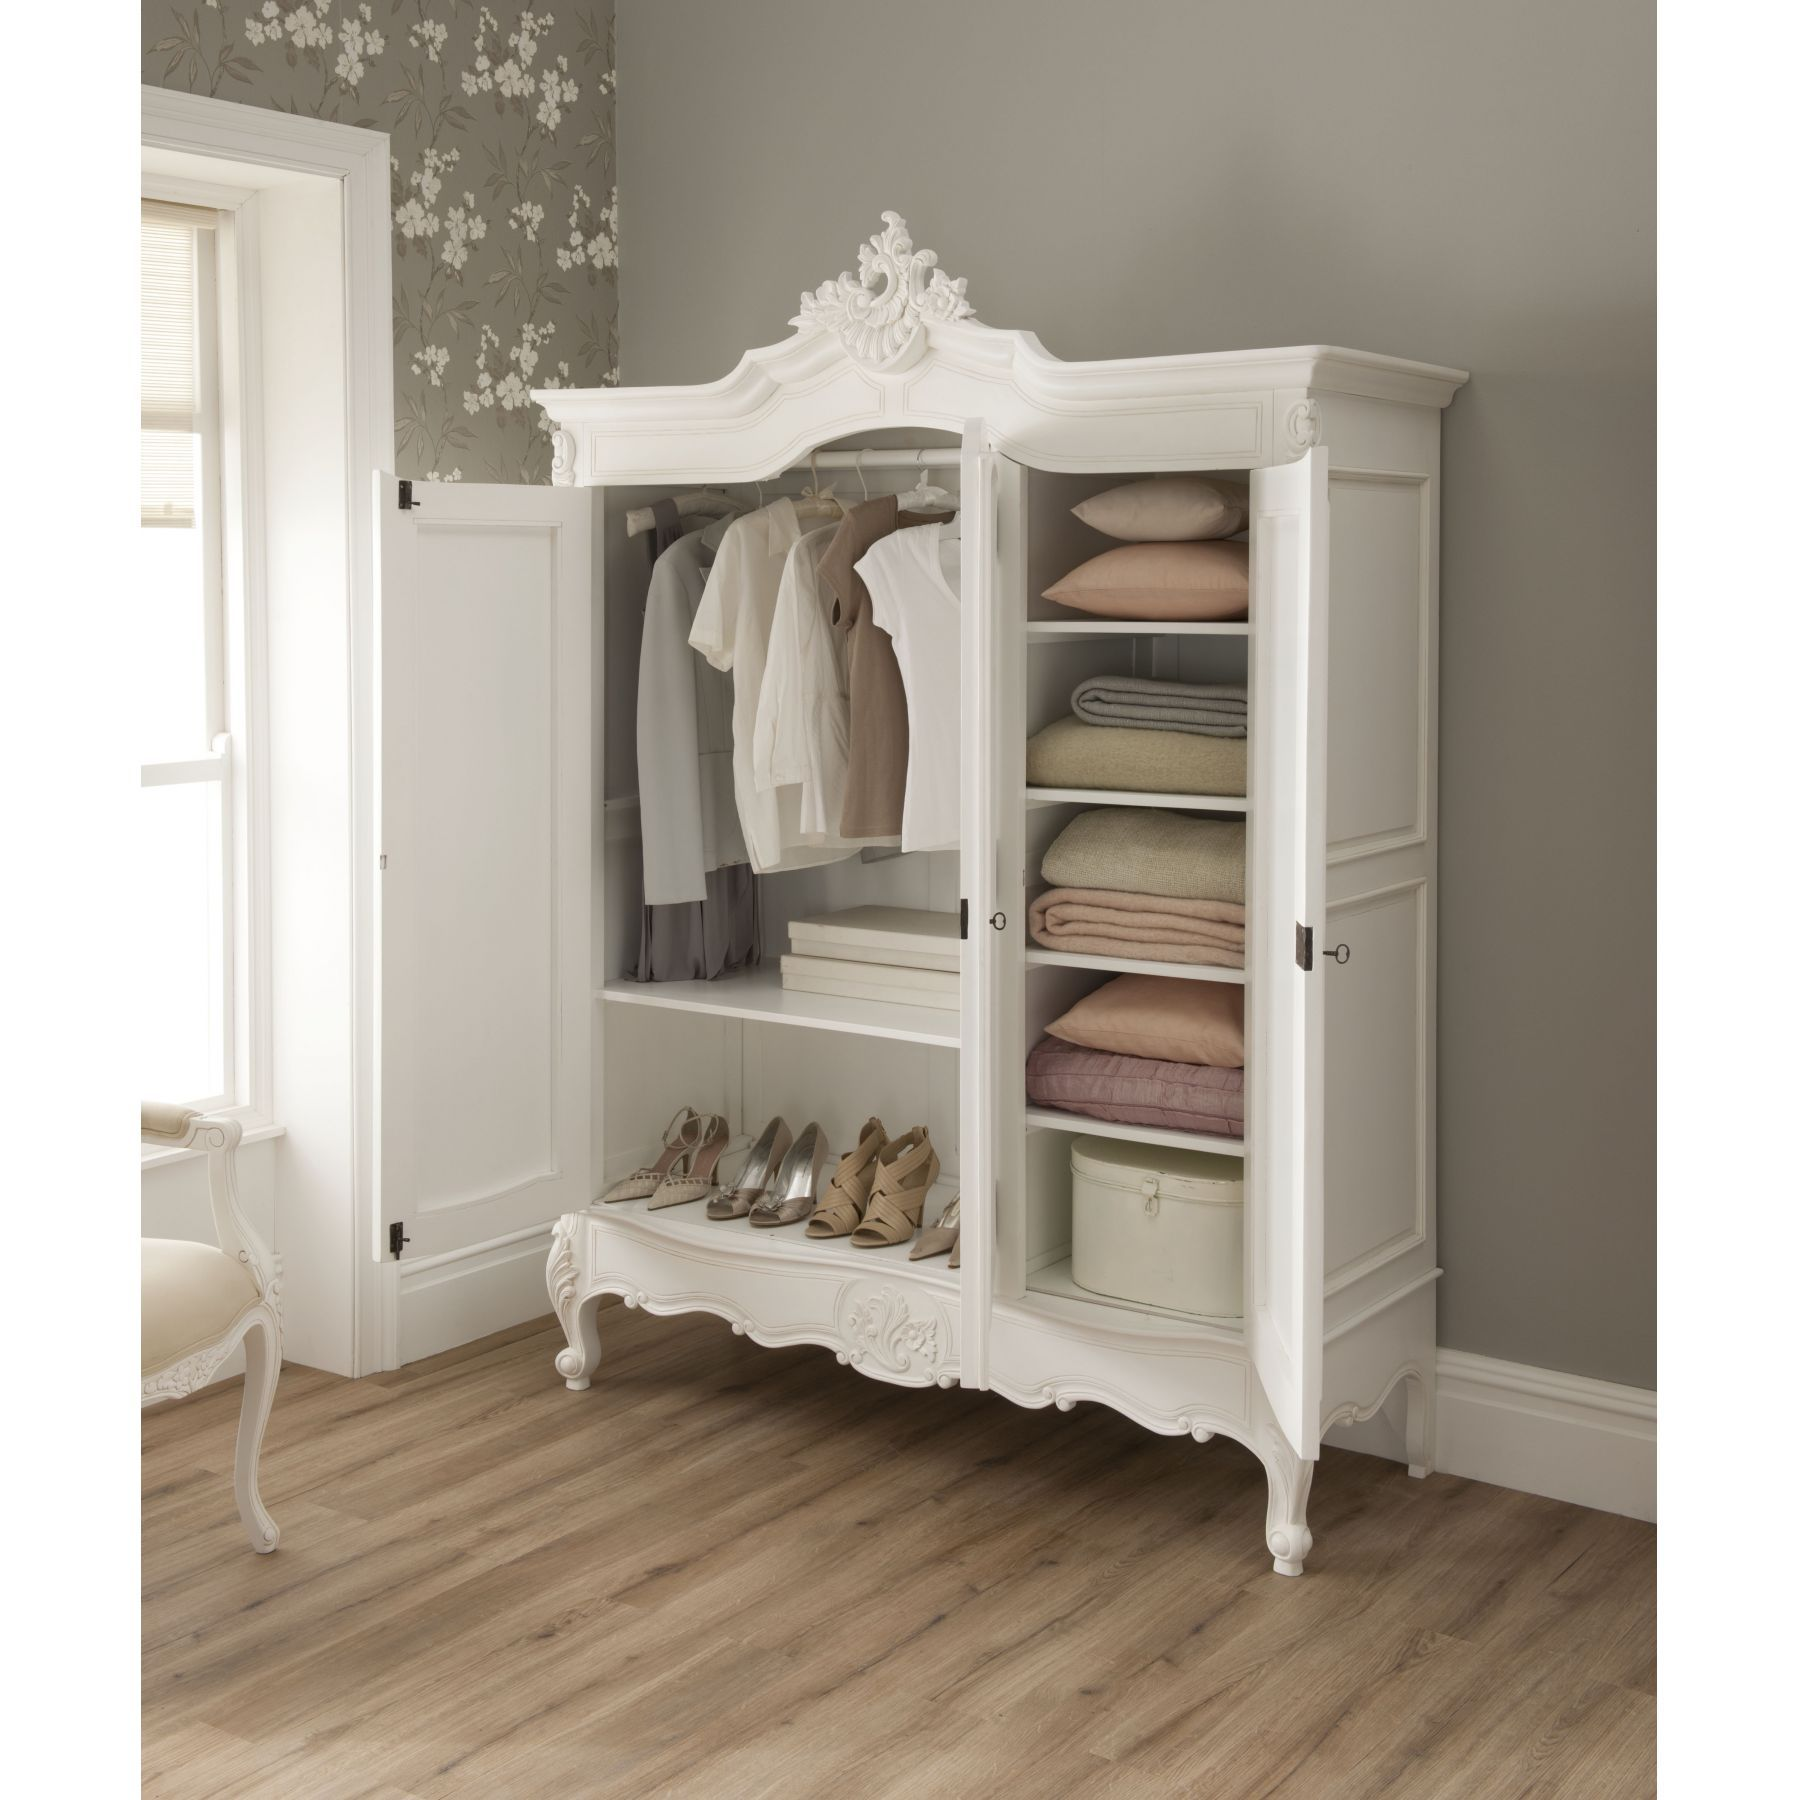 A Wardrobe Is The Perfect Addition To A Babyu0027s Room To Stylishly Hold The  Tiny Clothes